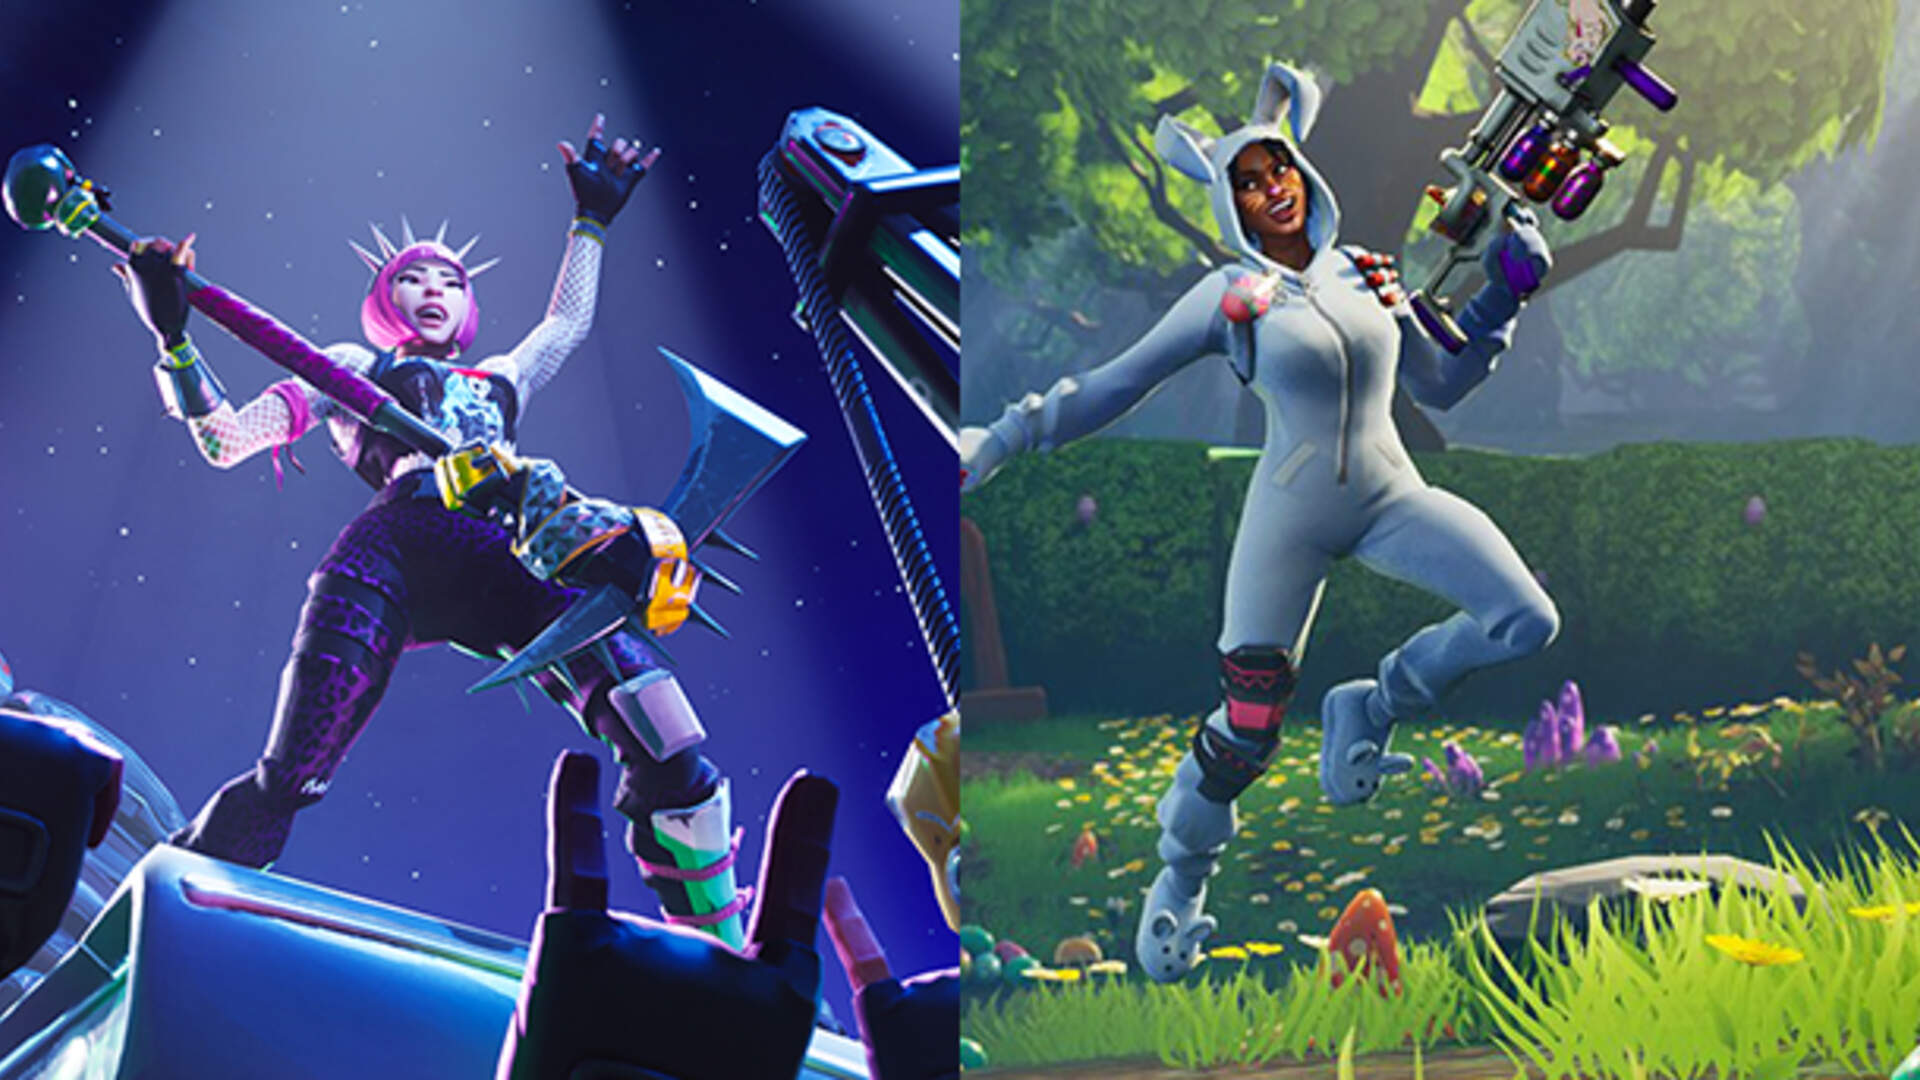 Almost 70% of Fortnite Players Have Spent Money on In-Game Purchases